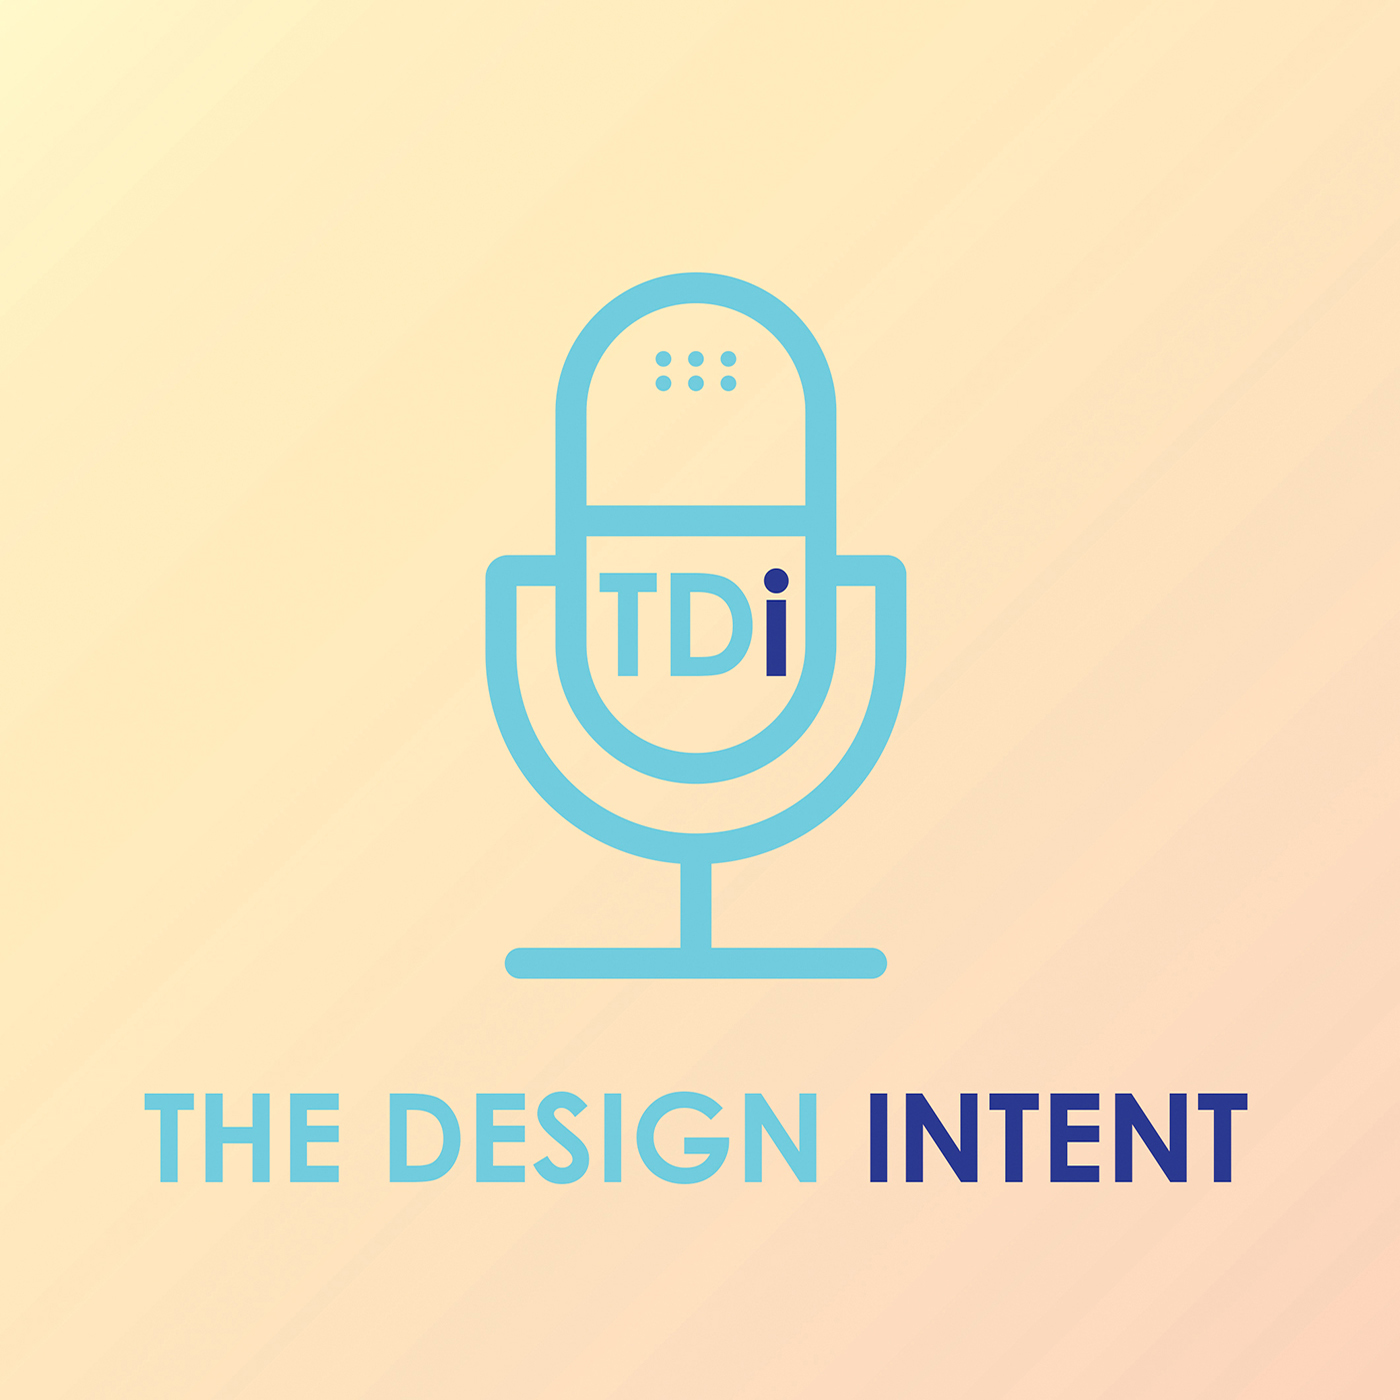 The Design Intent